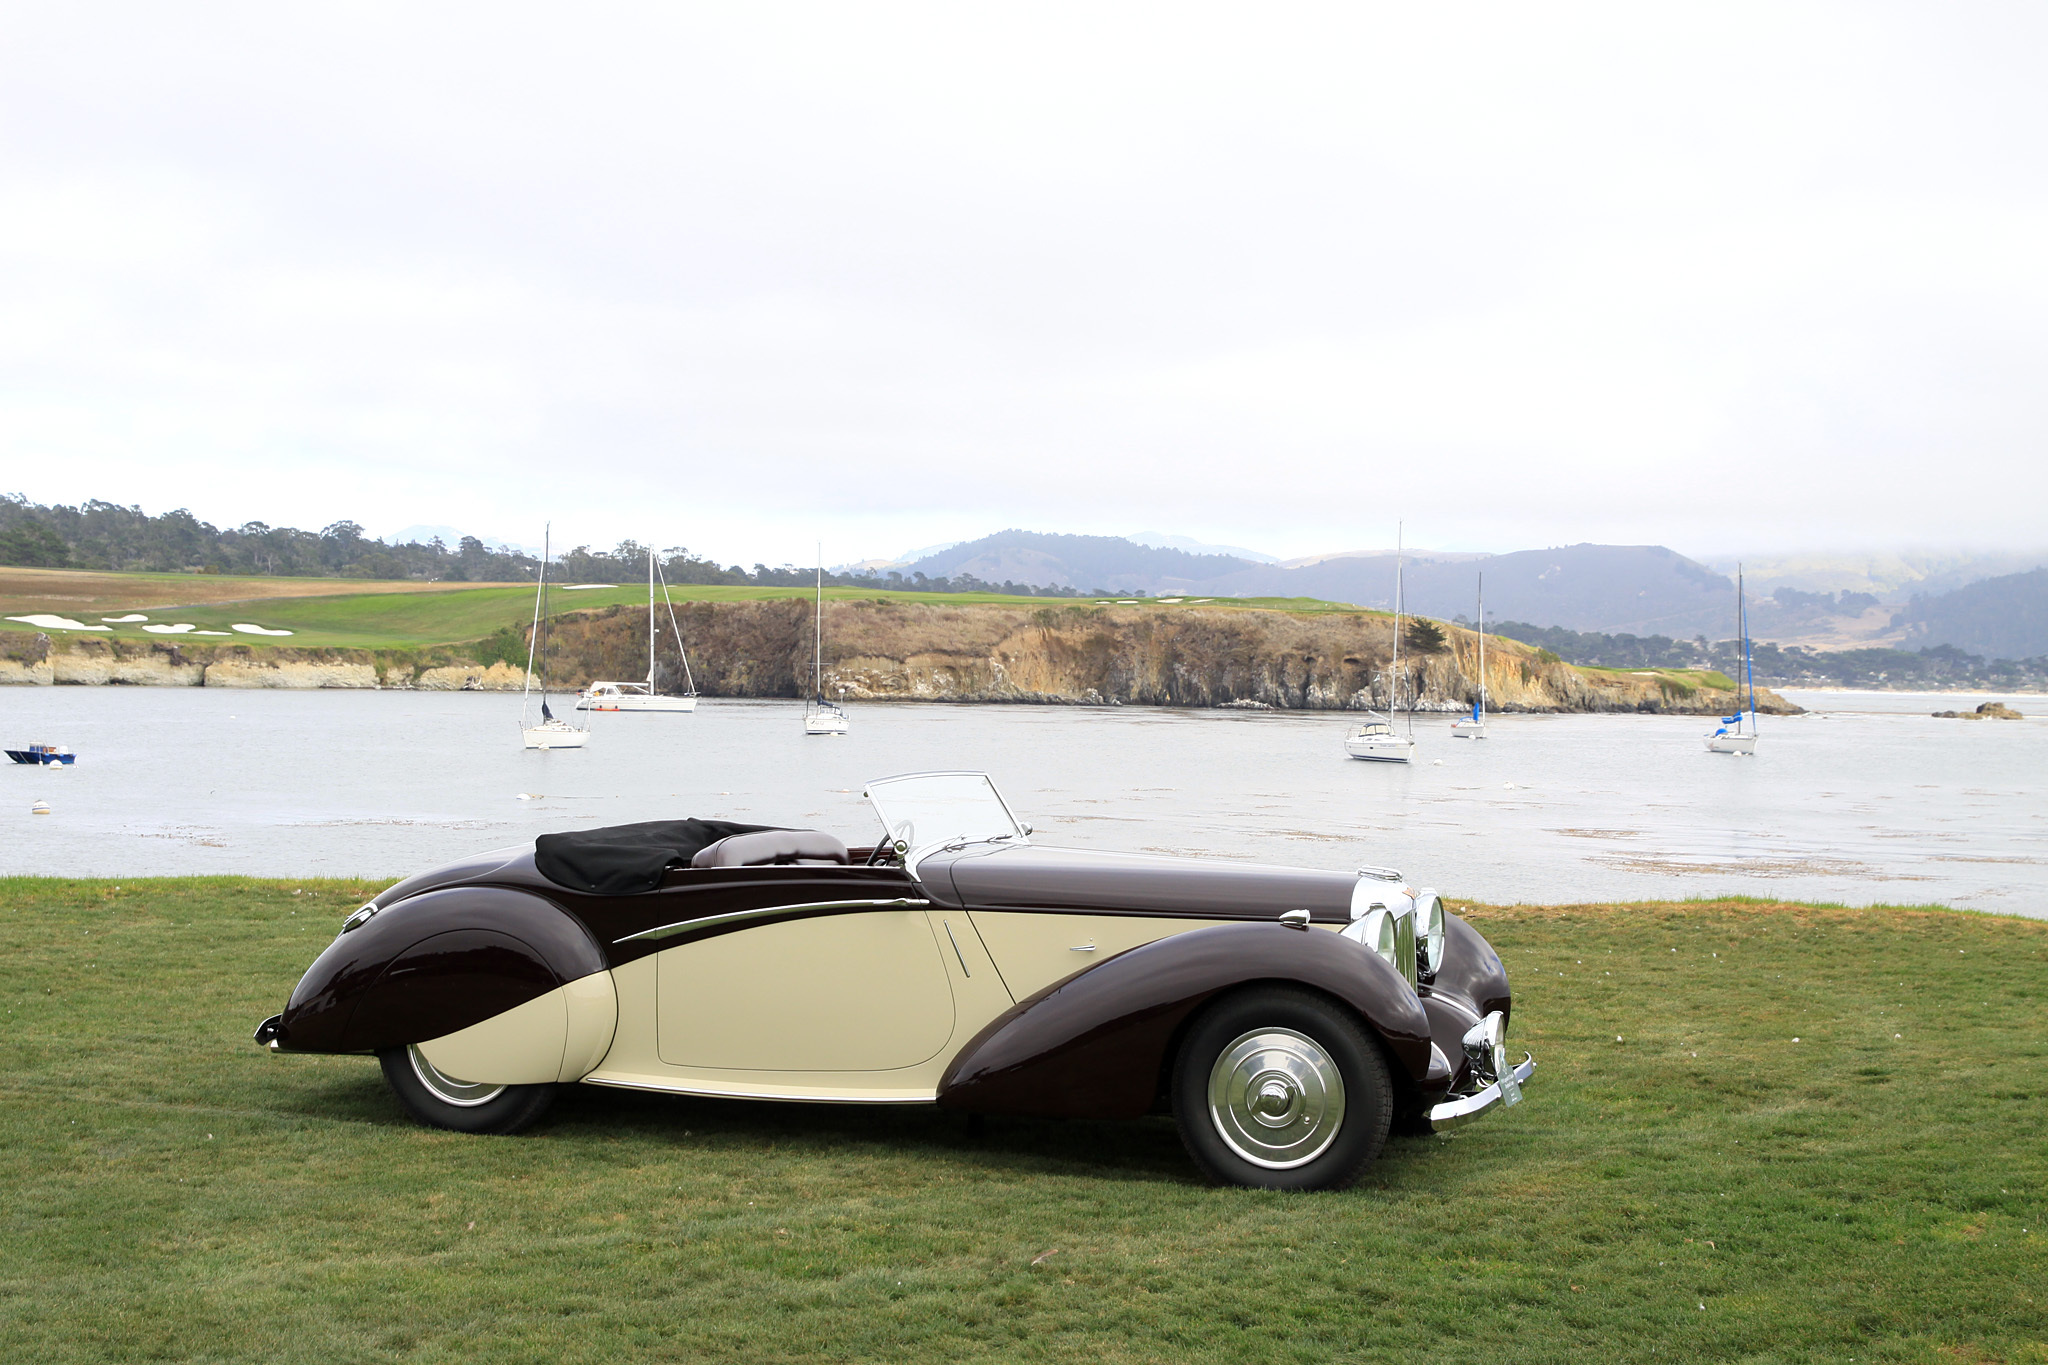 1939 Lagonda V12 Rapide Drophead Coupé 14091.  This V12 Drophead Coupé features a sporty, four-seat convertible body made by Lagonda's in-house coachbuilding division. After several owners in the United Kingdom it was taken to Australia in 1969 before its current owner brought it to the United States in 2006.